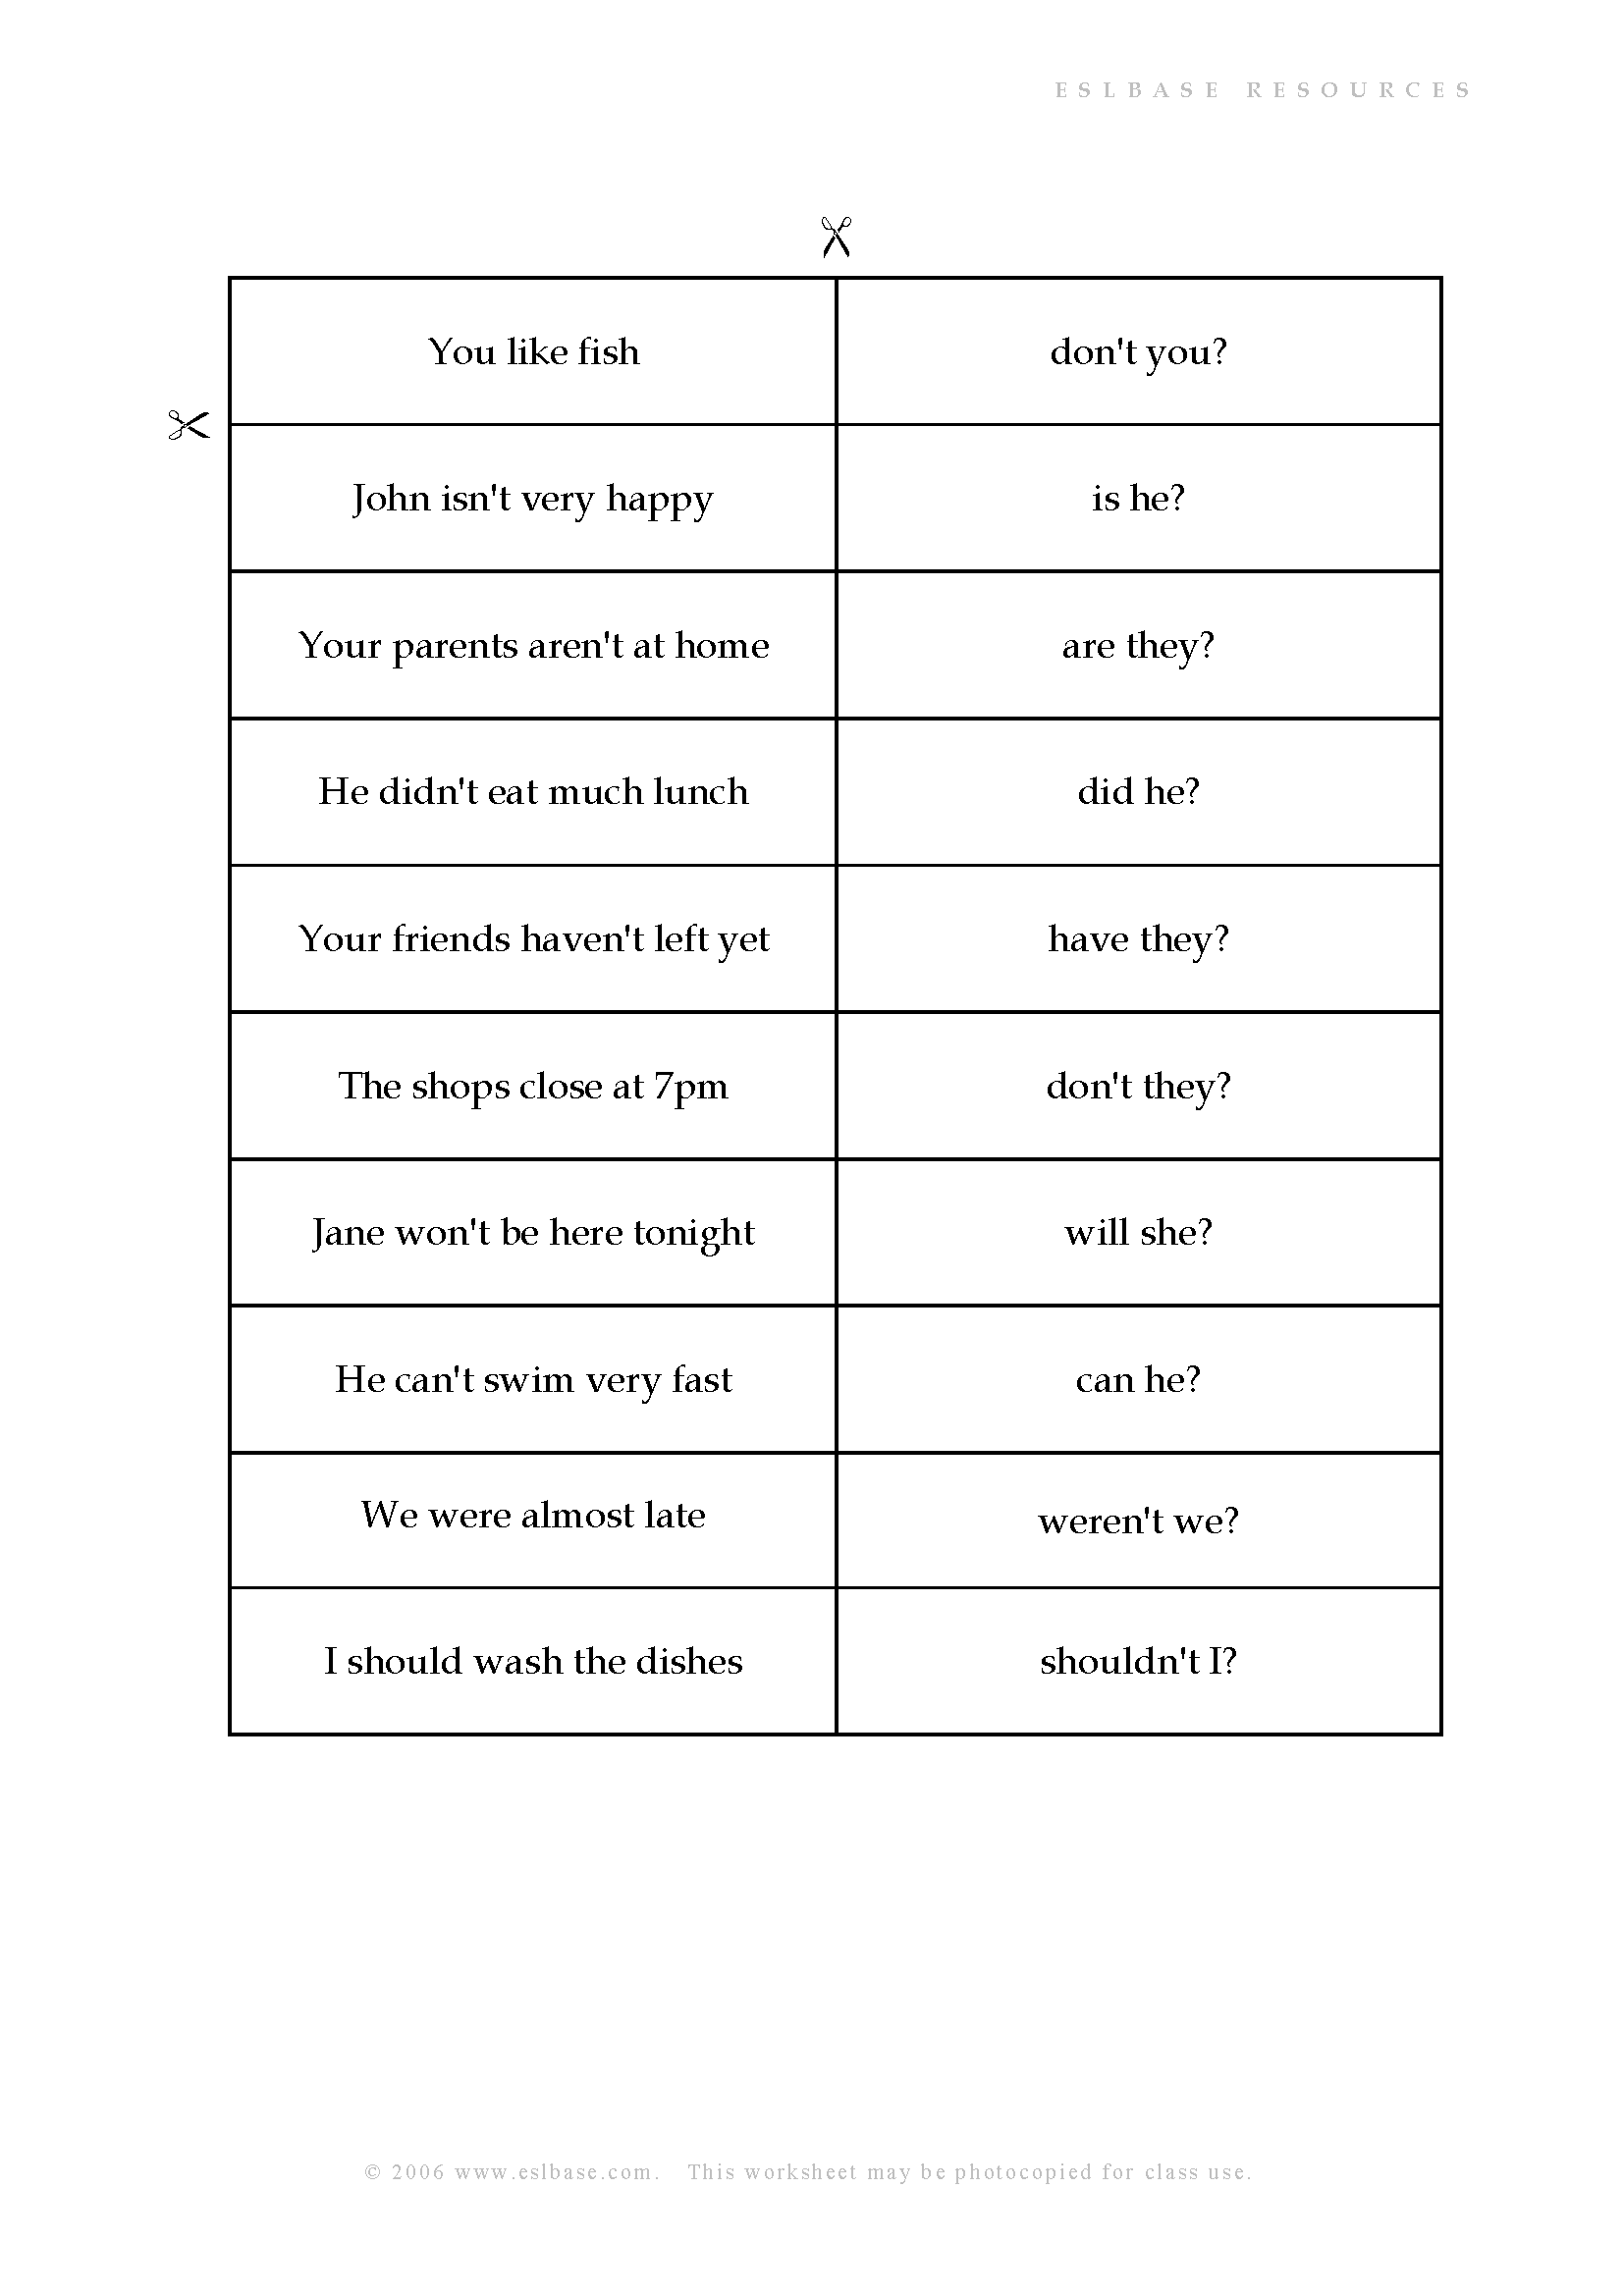 Tag Questions Matching activity - Eslbase.com